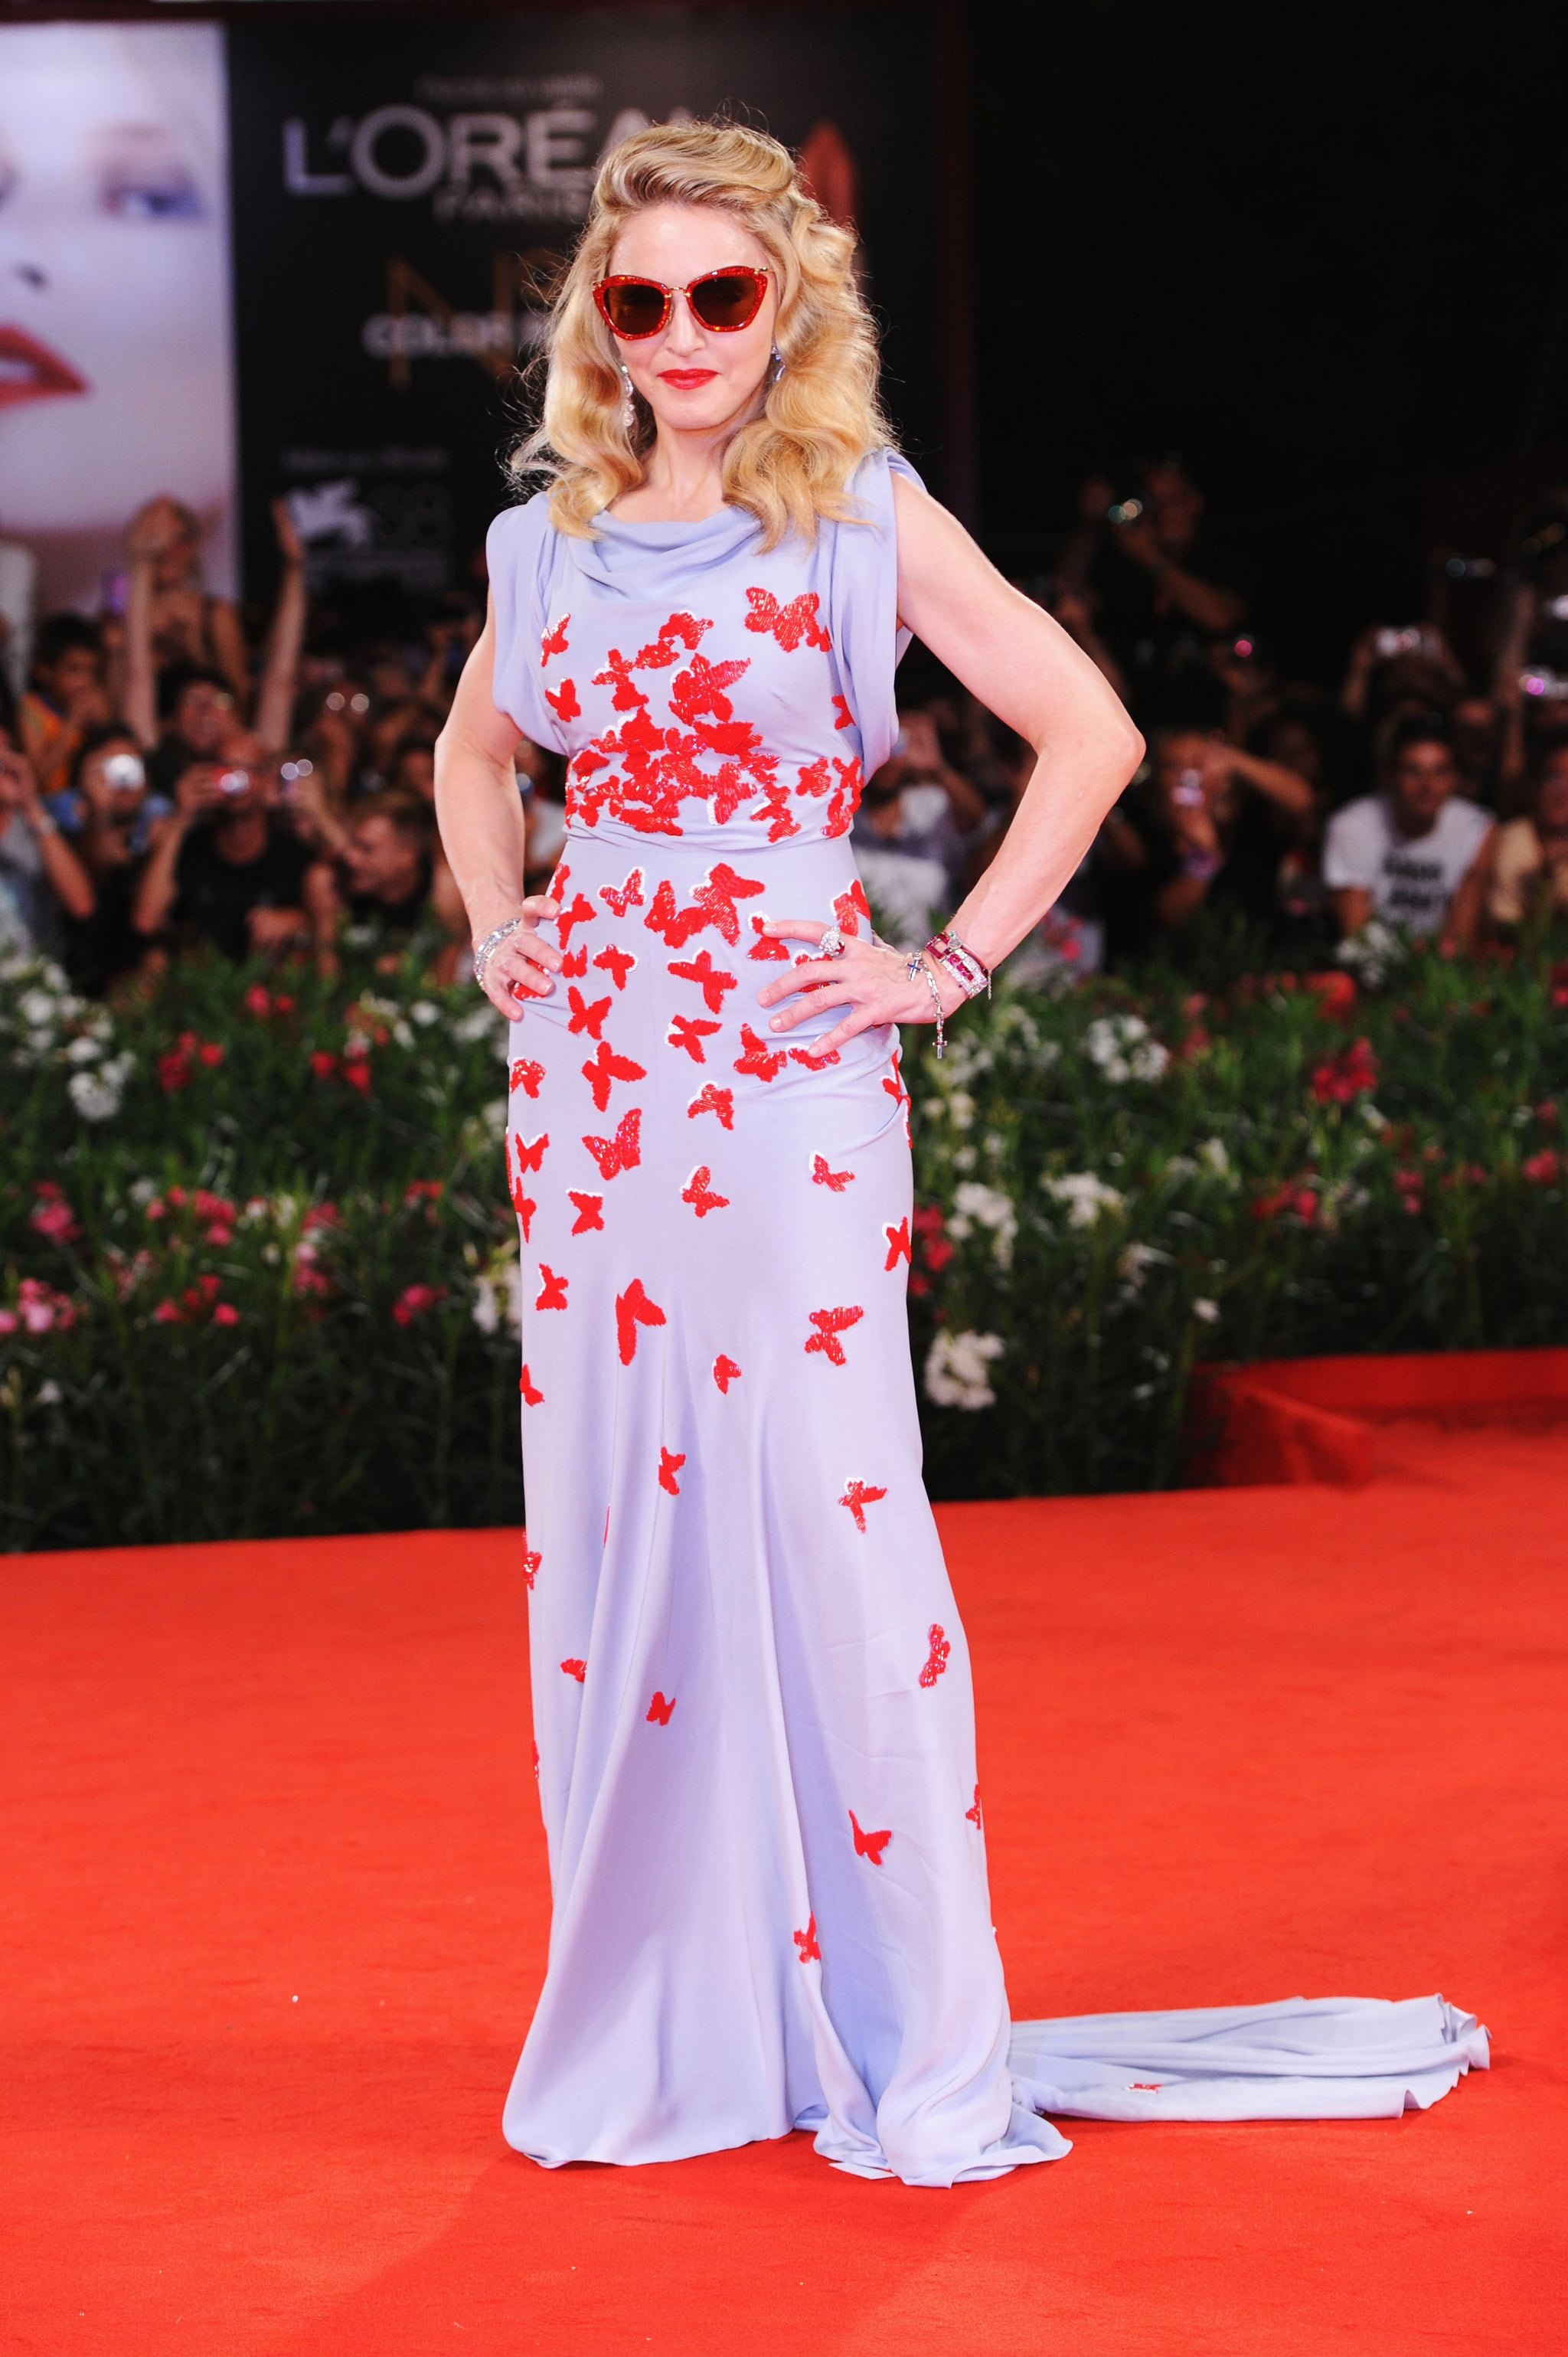 Madonna wore butterflies on a lavender gown.